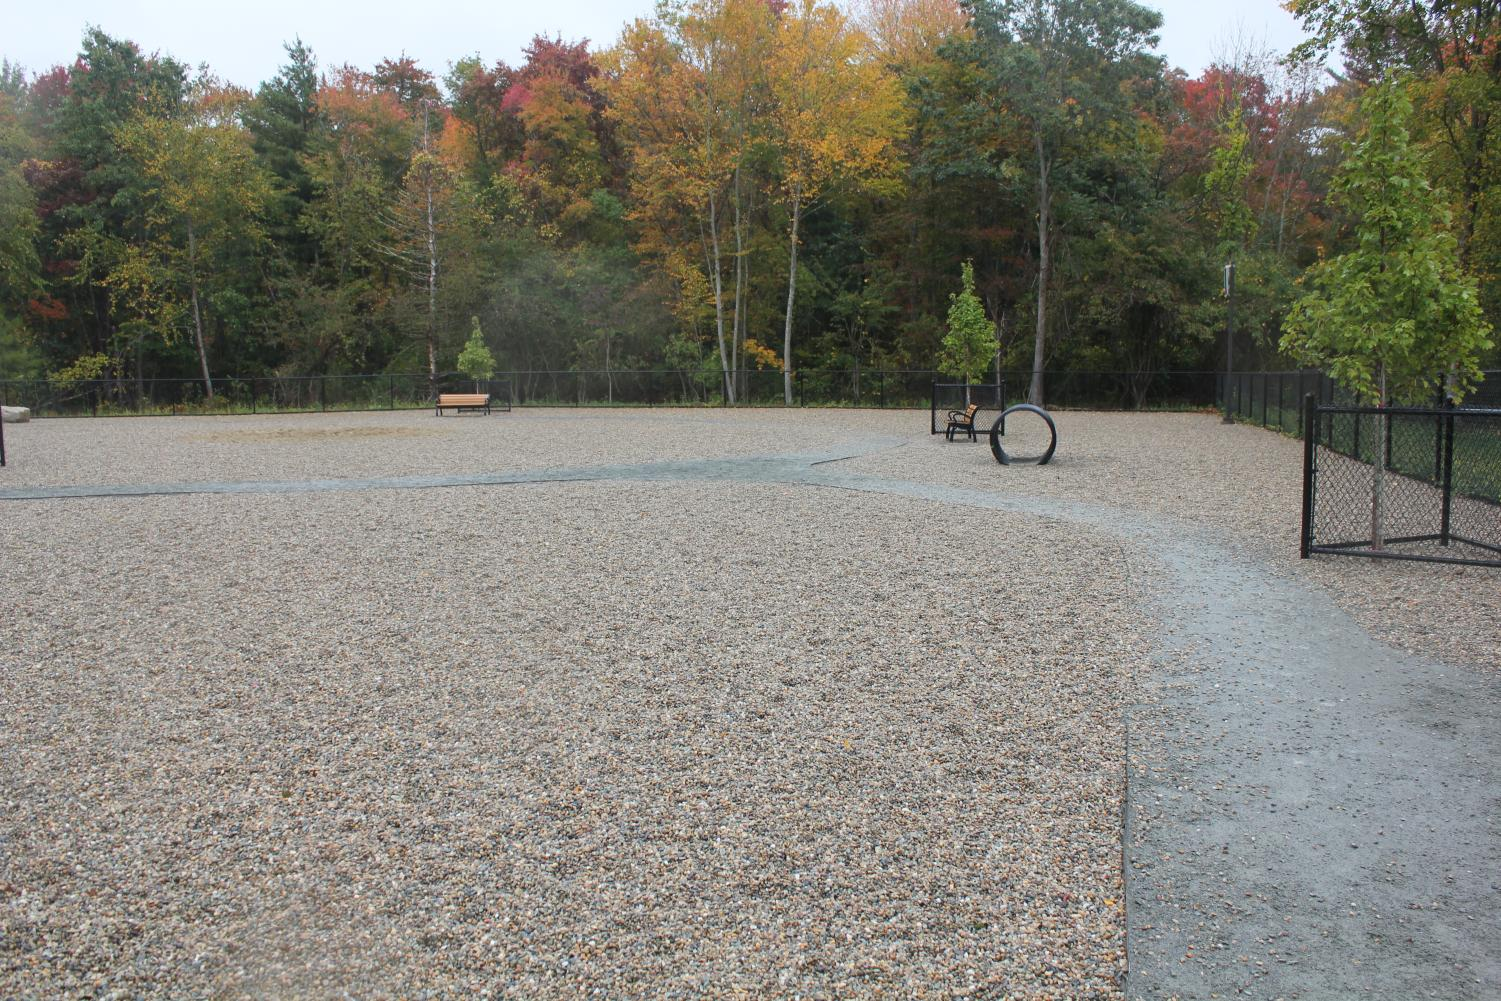 The+Abington+Dog+Park+is+lined+with+trees+brightly+on+rainy+fall+day%2C+October+9%2C+2019.